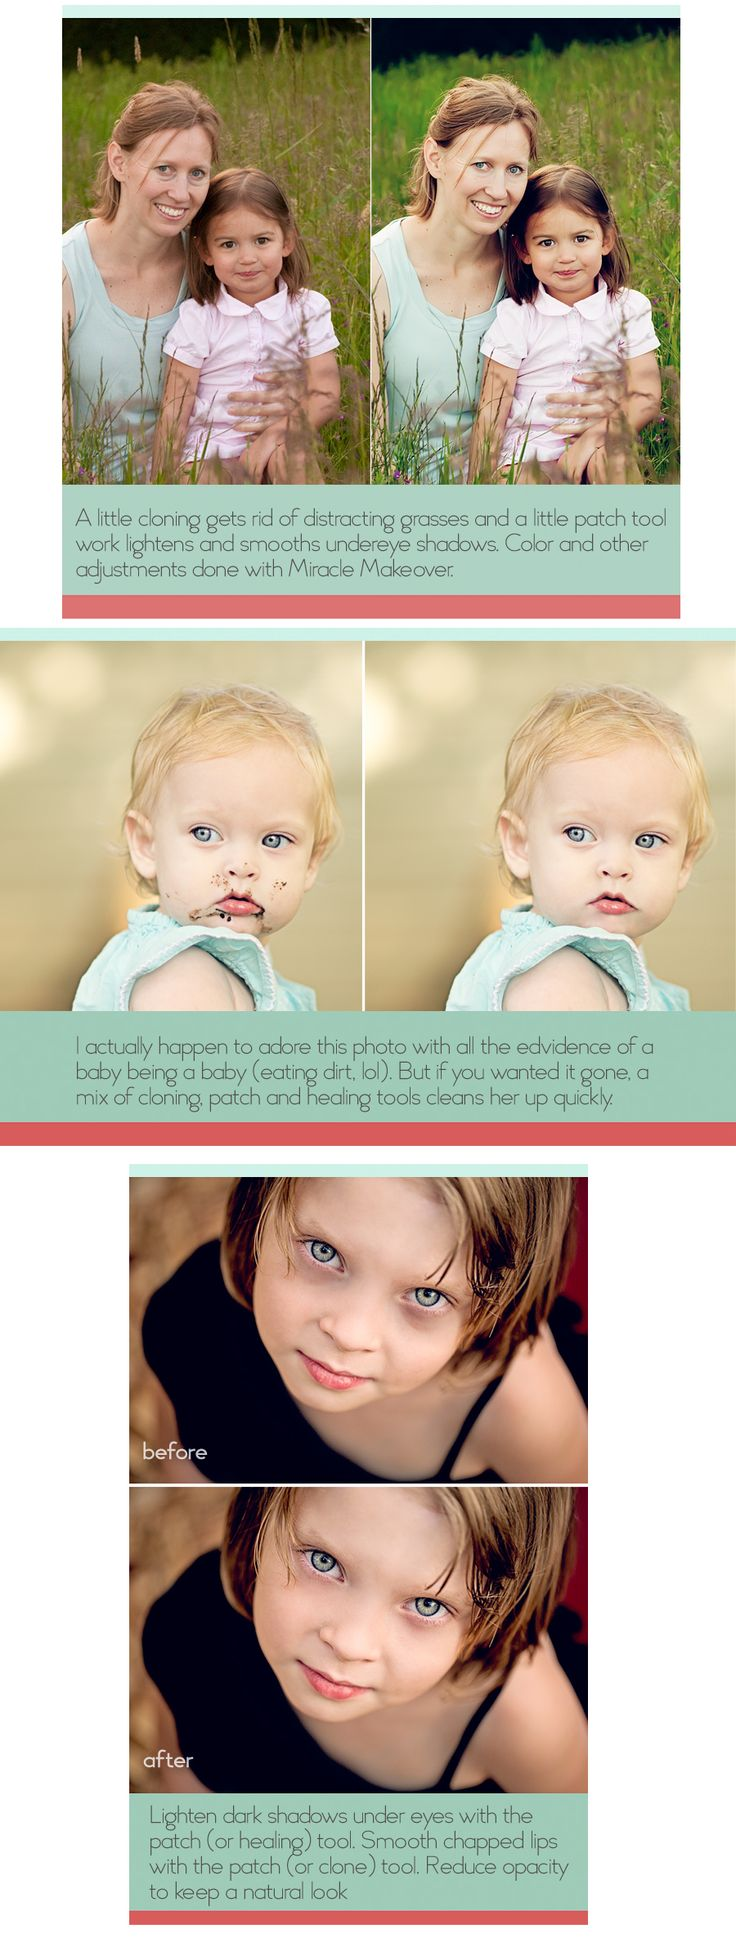 How to fix color cast in photoshop elements - Art Cloning Healing And Patching Tips From The Fab Annie Paint The Moon Photography Stuff